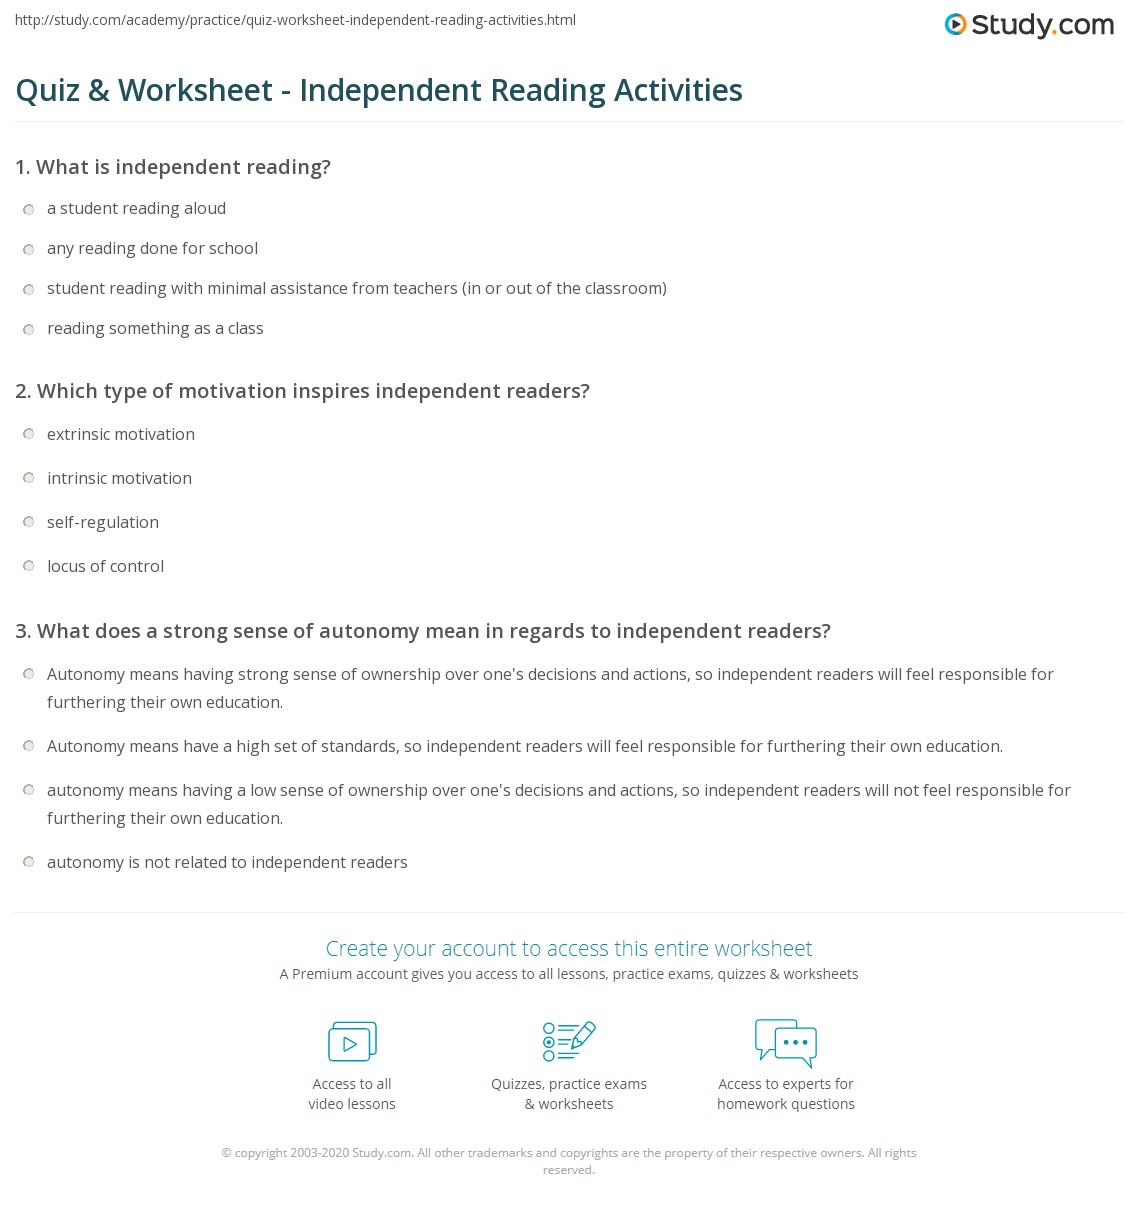 Independent Reading Worksheet